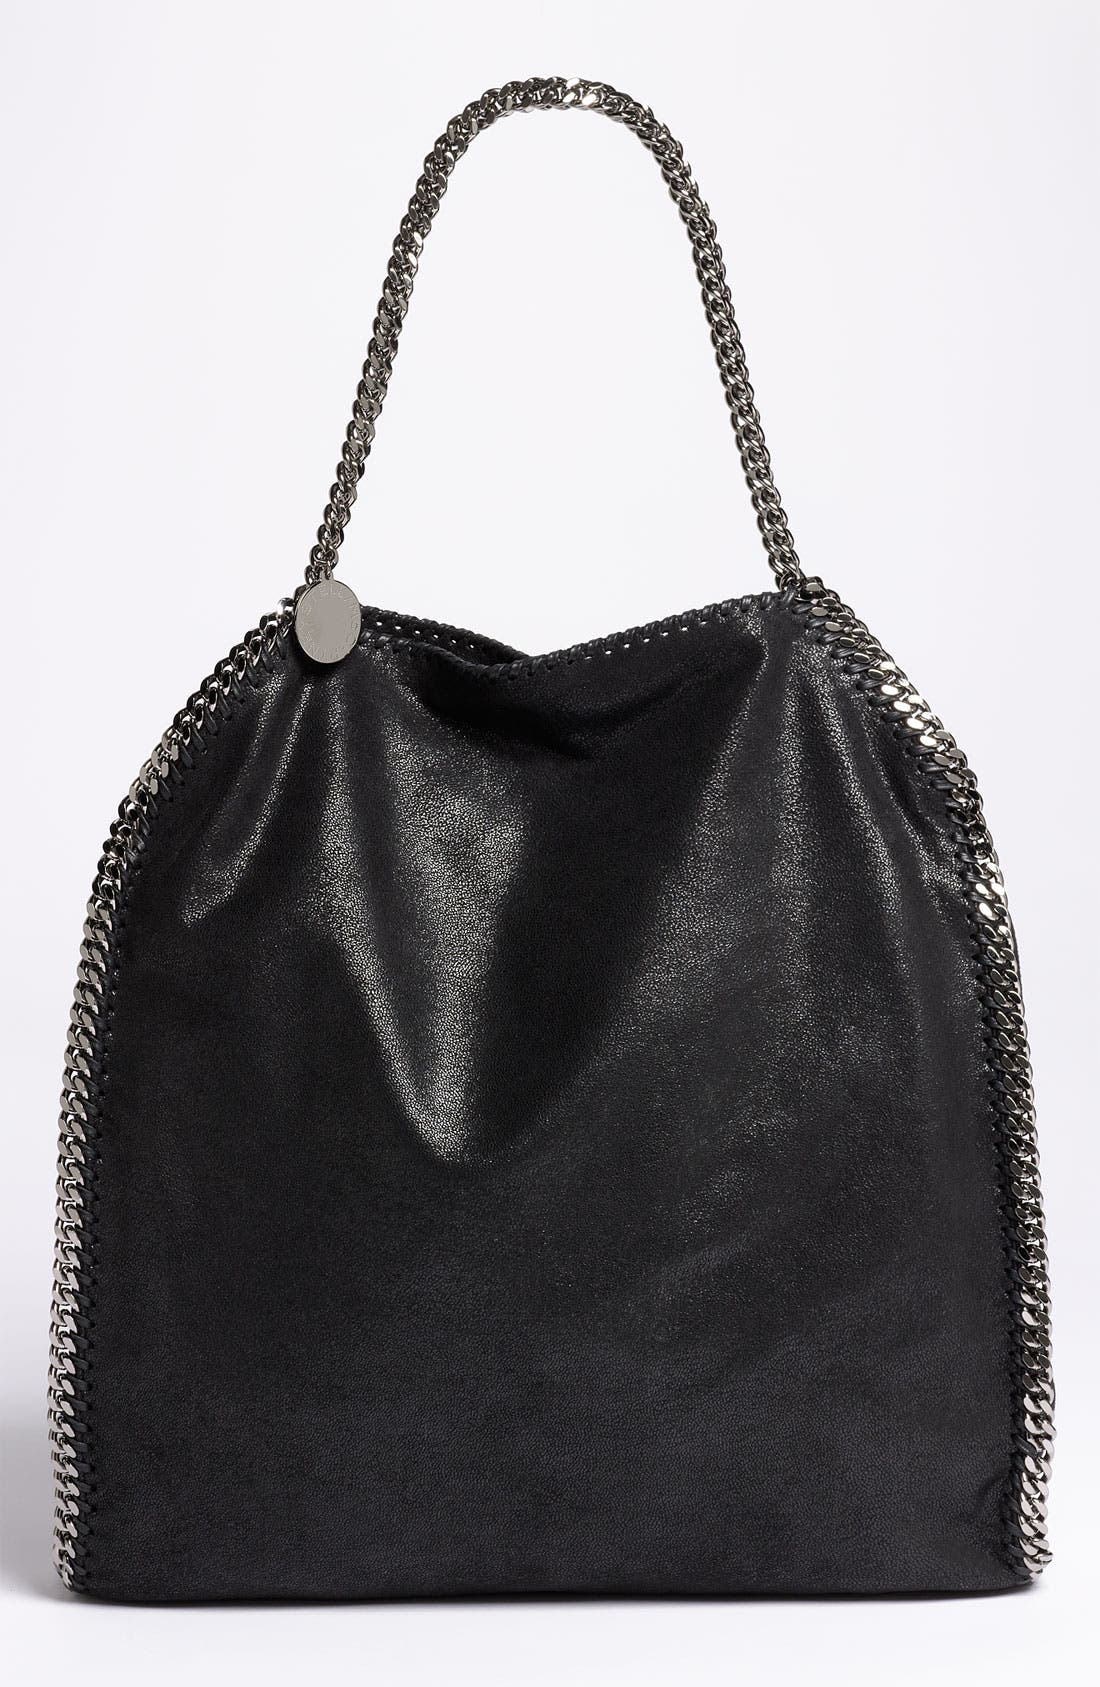 STELLA MCCARTNEY 'Large Falabella - Shaggy Deer' Faux Leather Tote, Main, color, 001